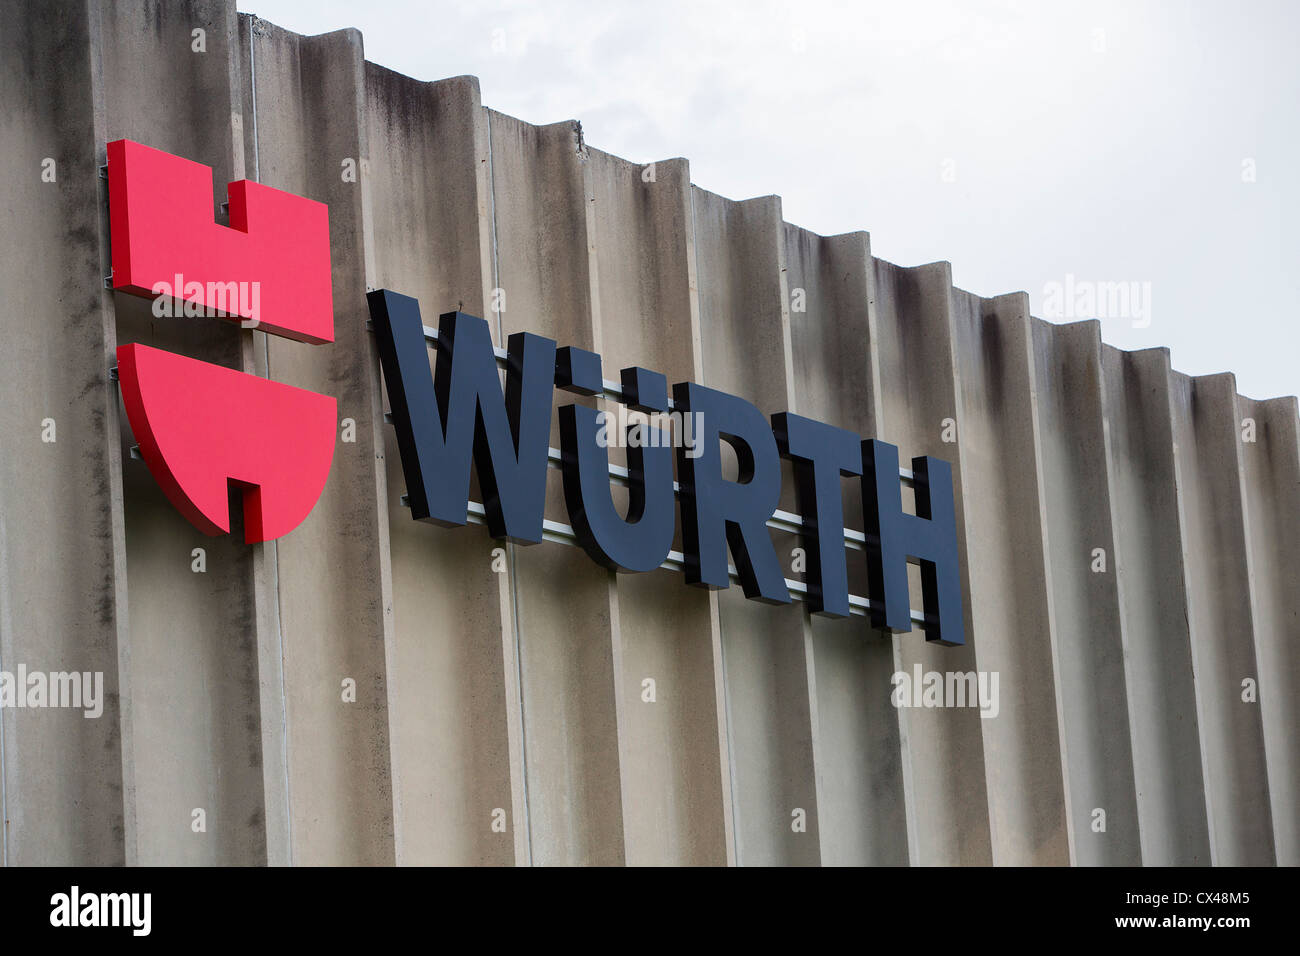 A Wurth warehouse.  - Stock Image